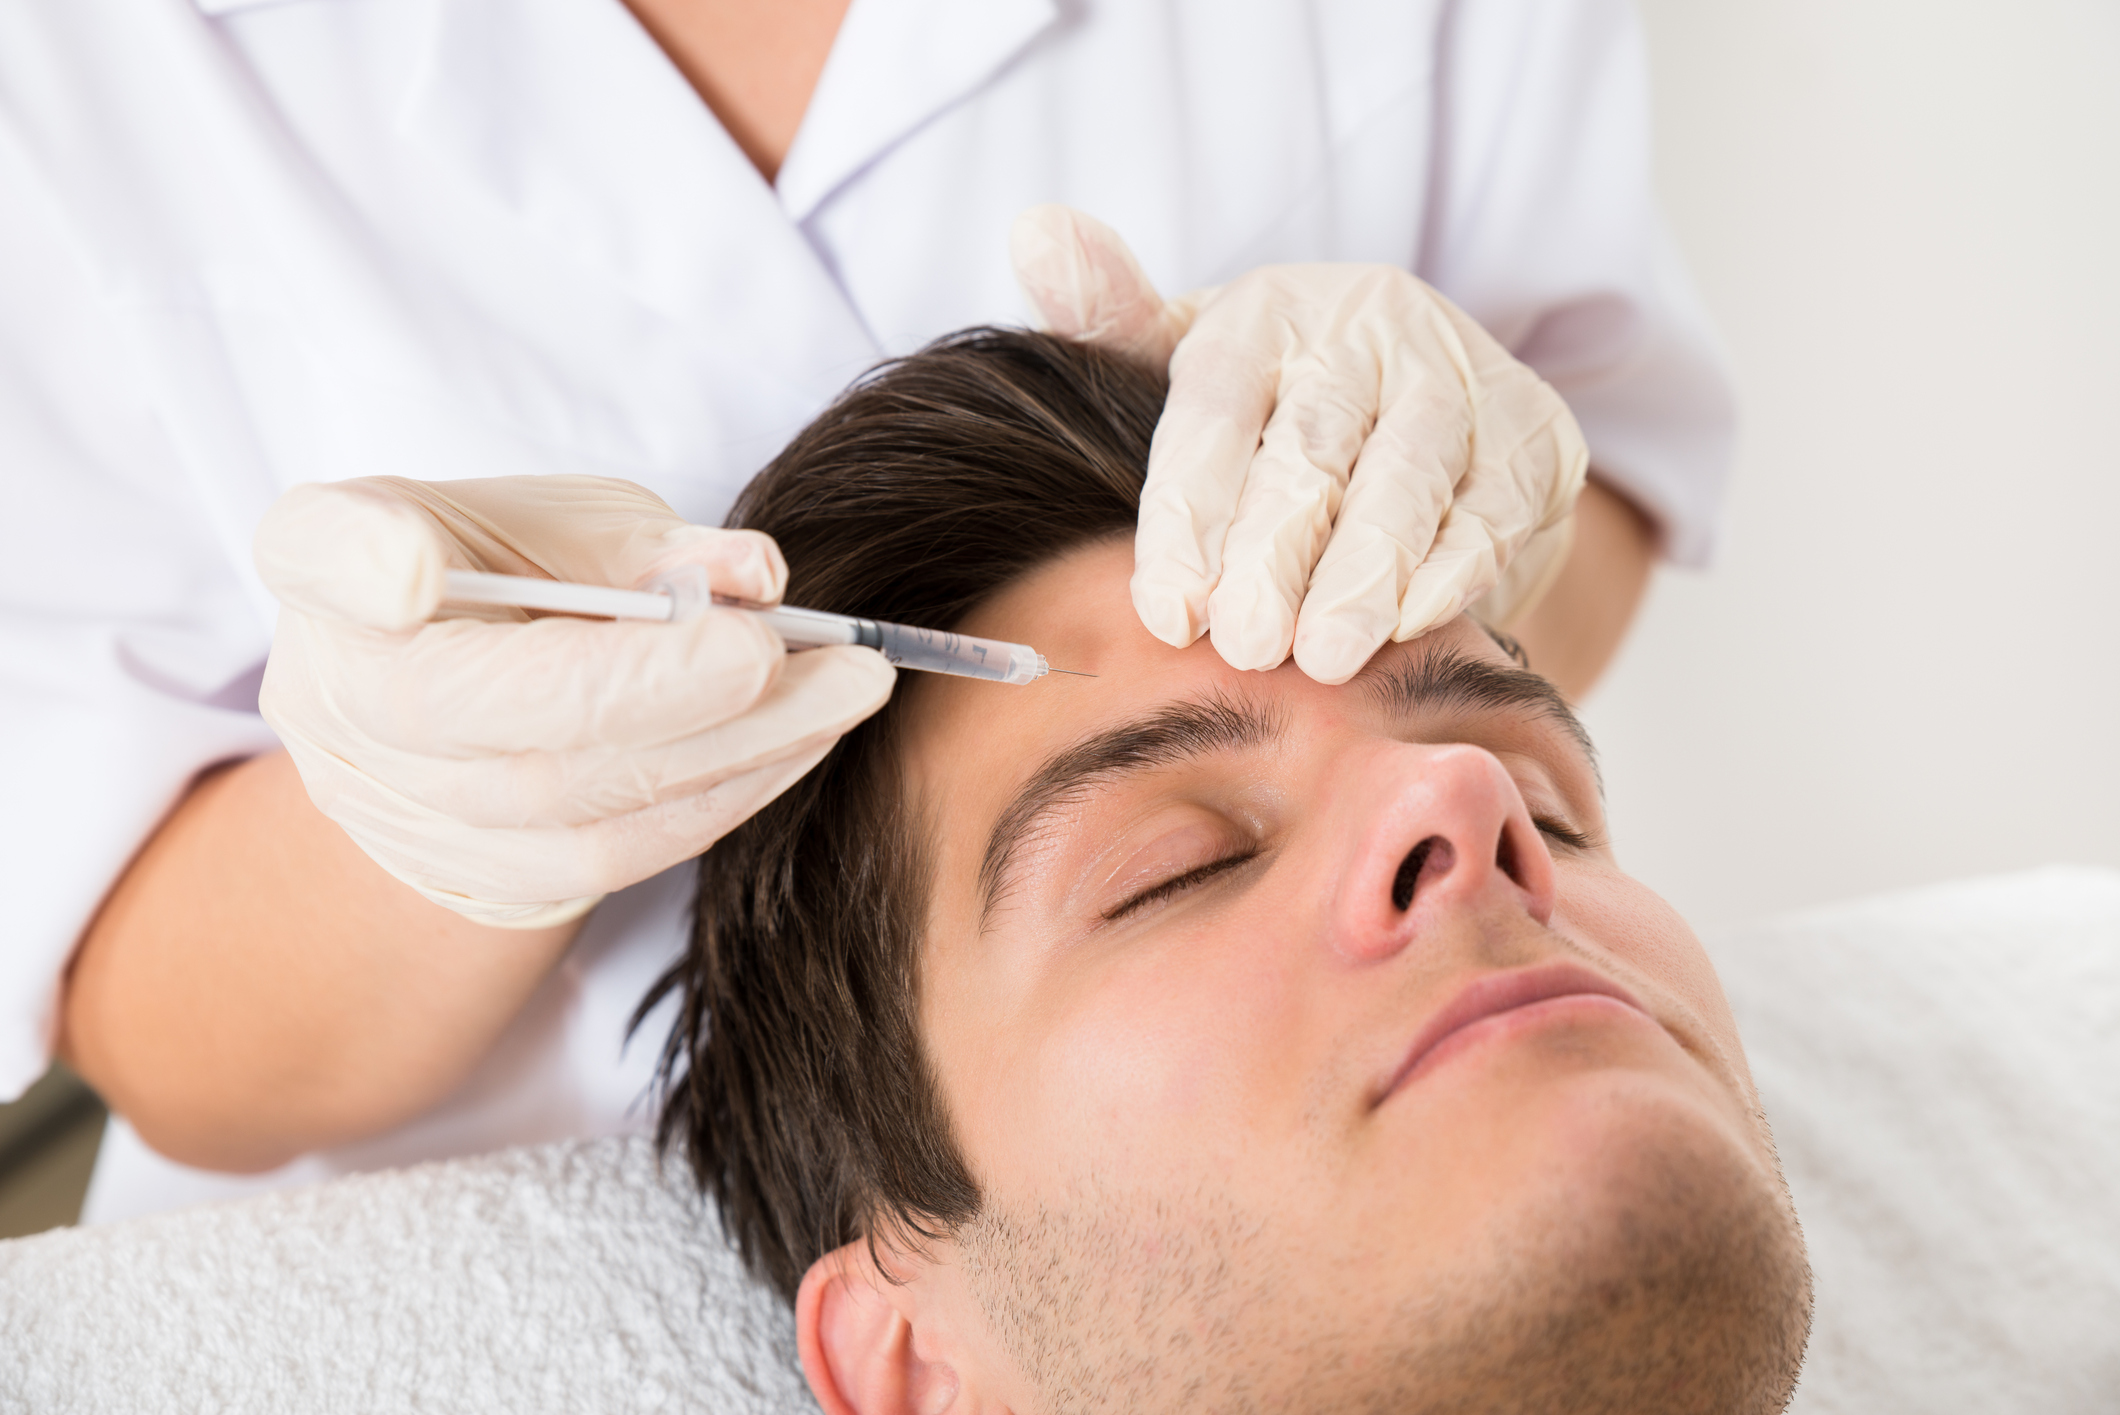 best place to get Botox in Santa Monica